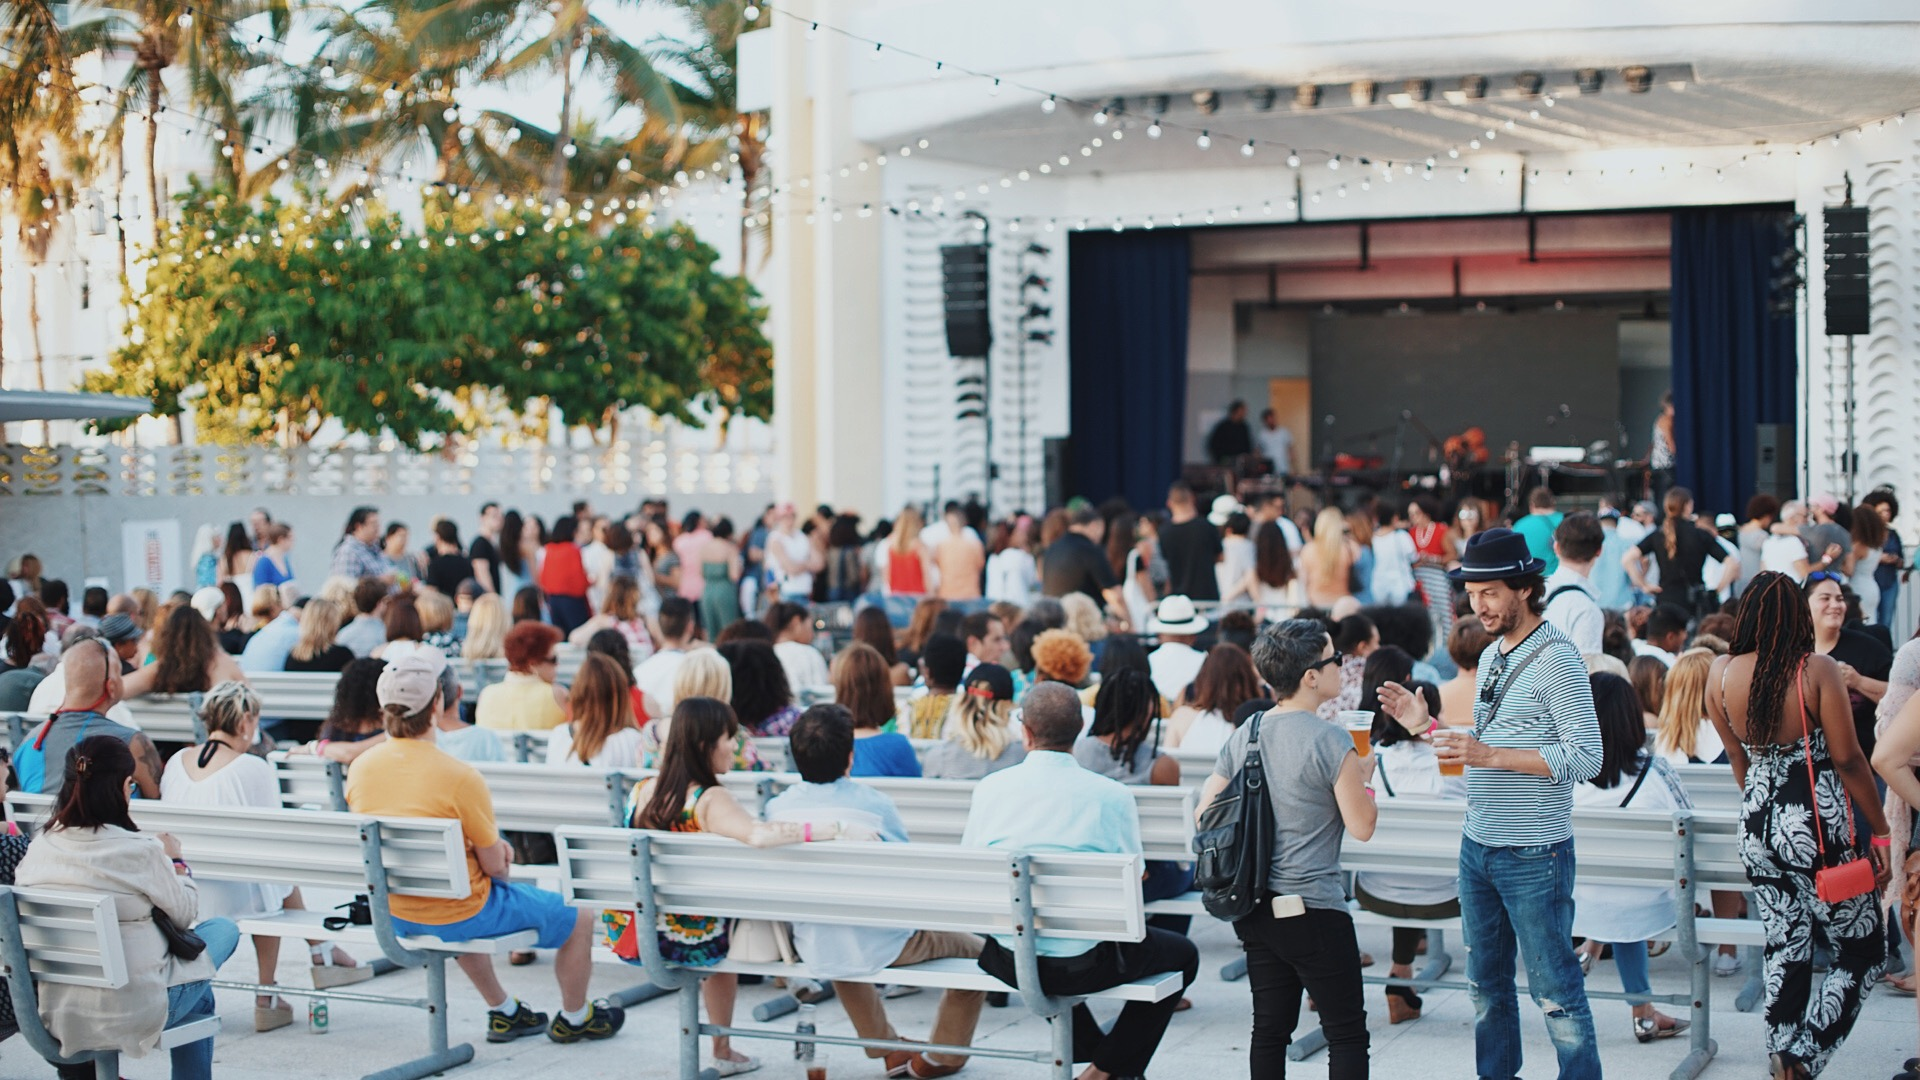 Sold out crowd for Ibeyi's show @North Beach Bandshell.JPG